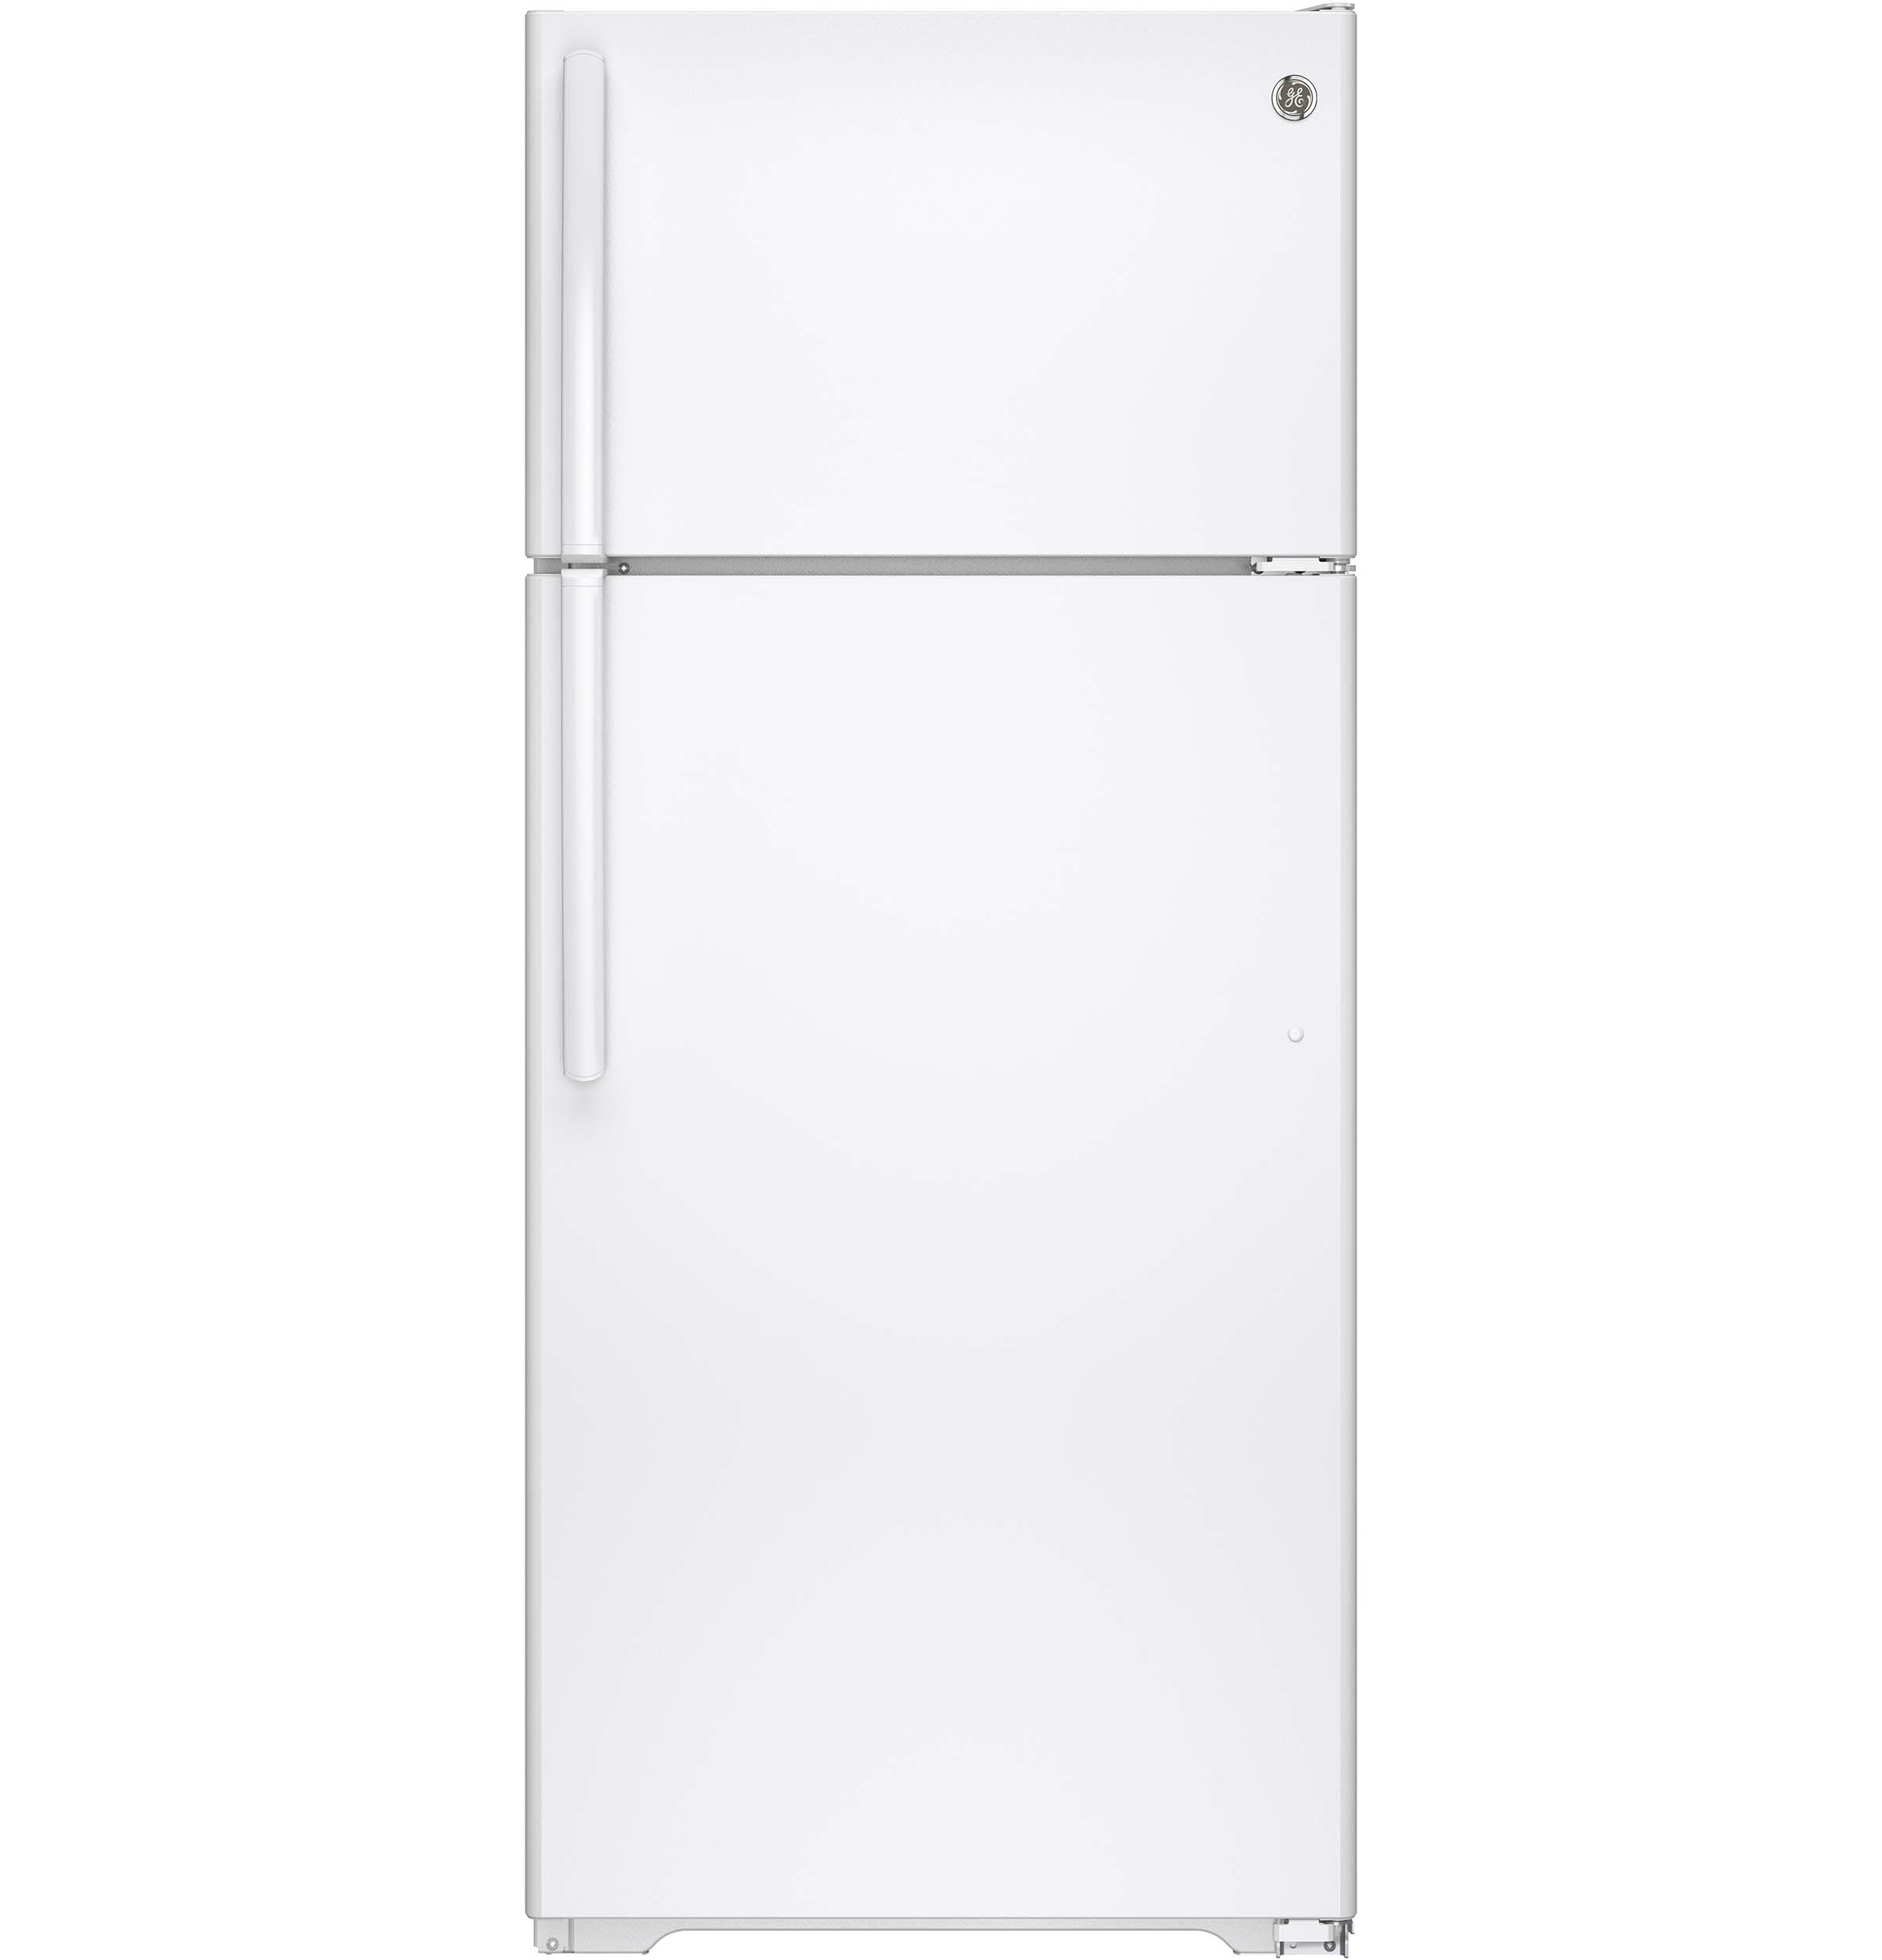 GE GE® 17.5 Cu. Ft. Top-Freezer Refrigerator